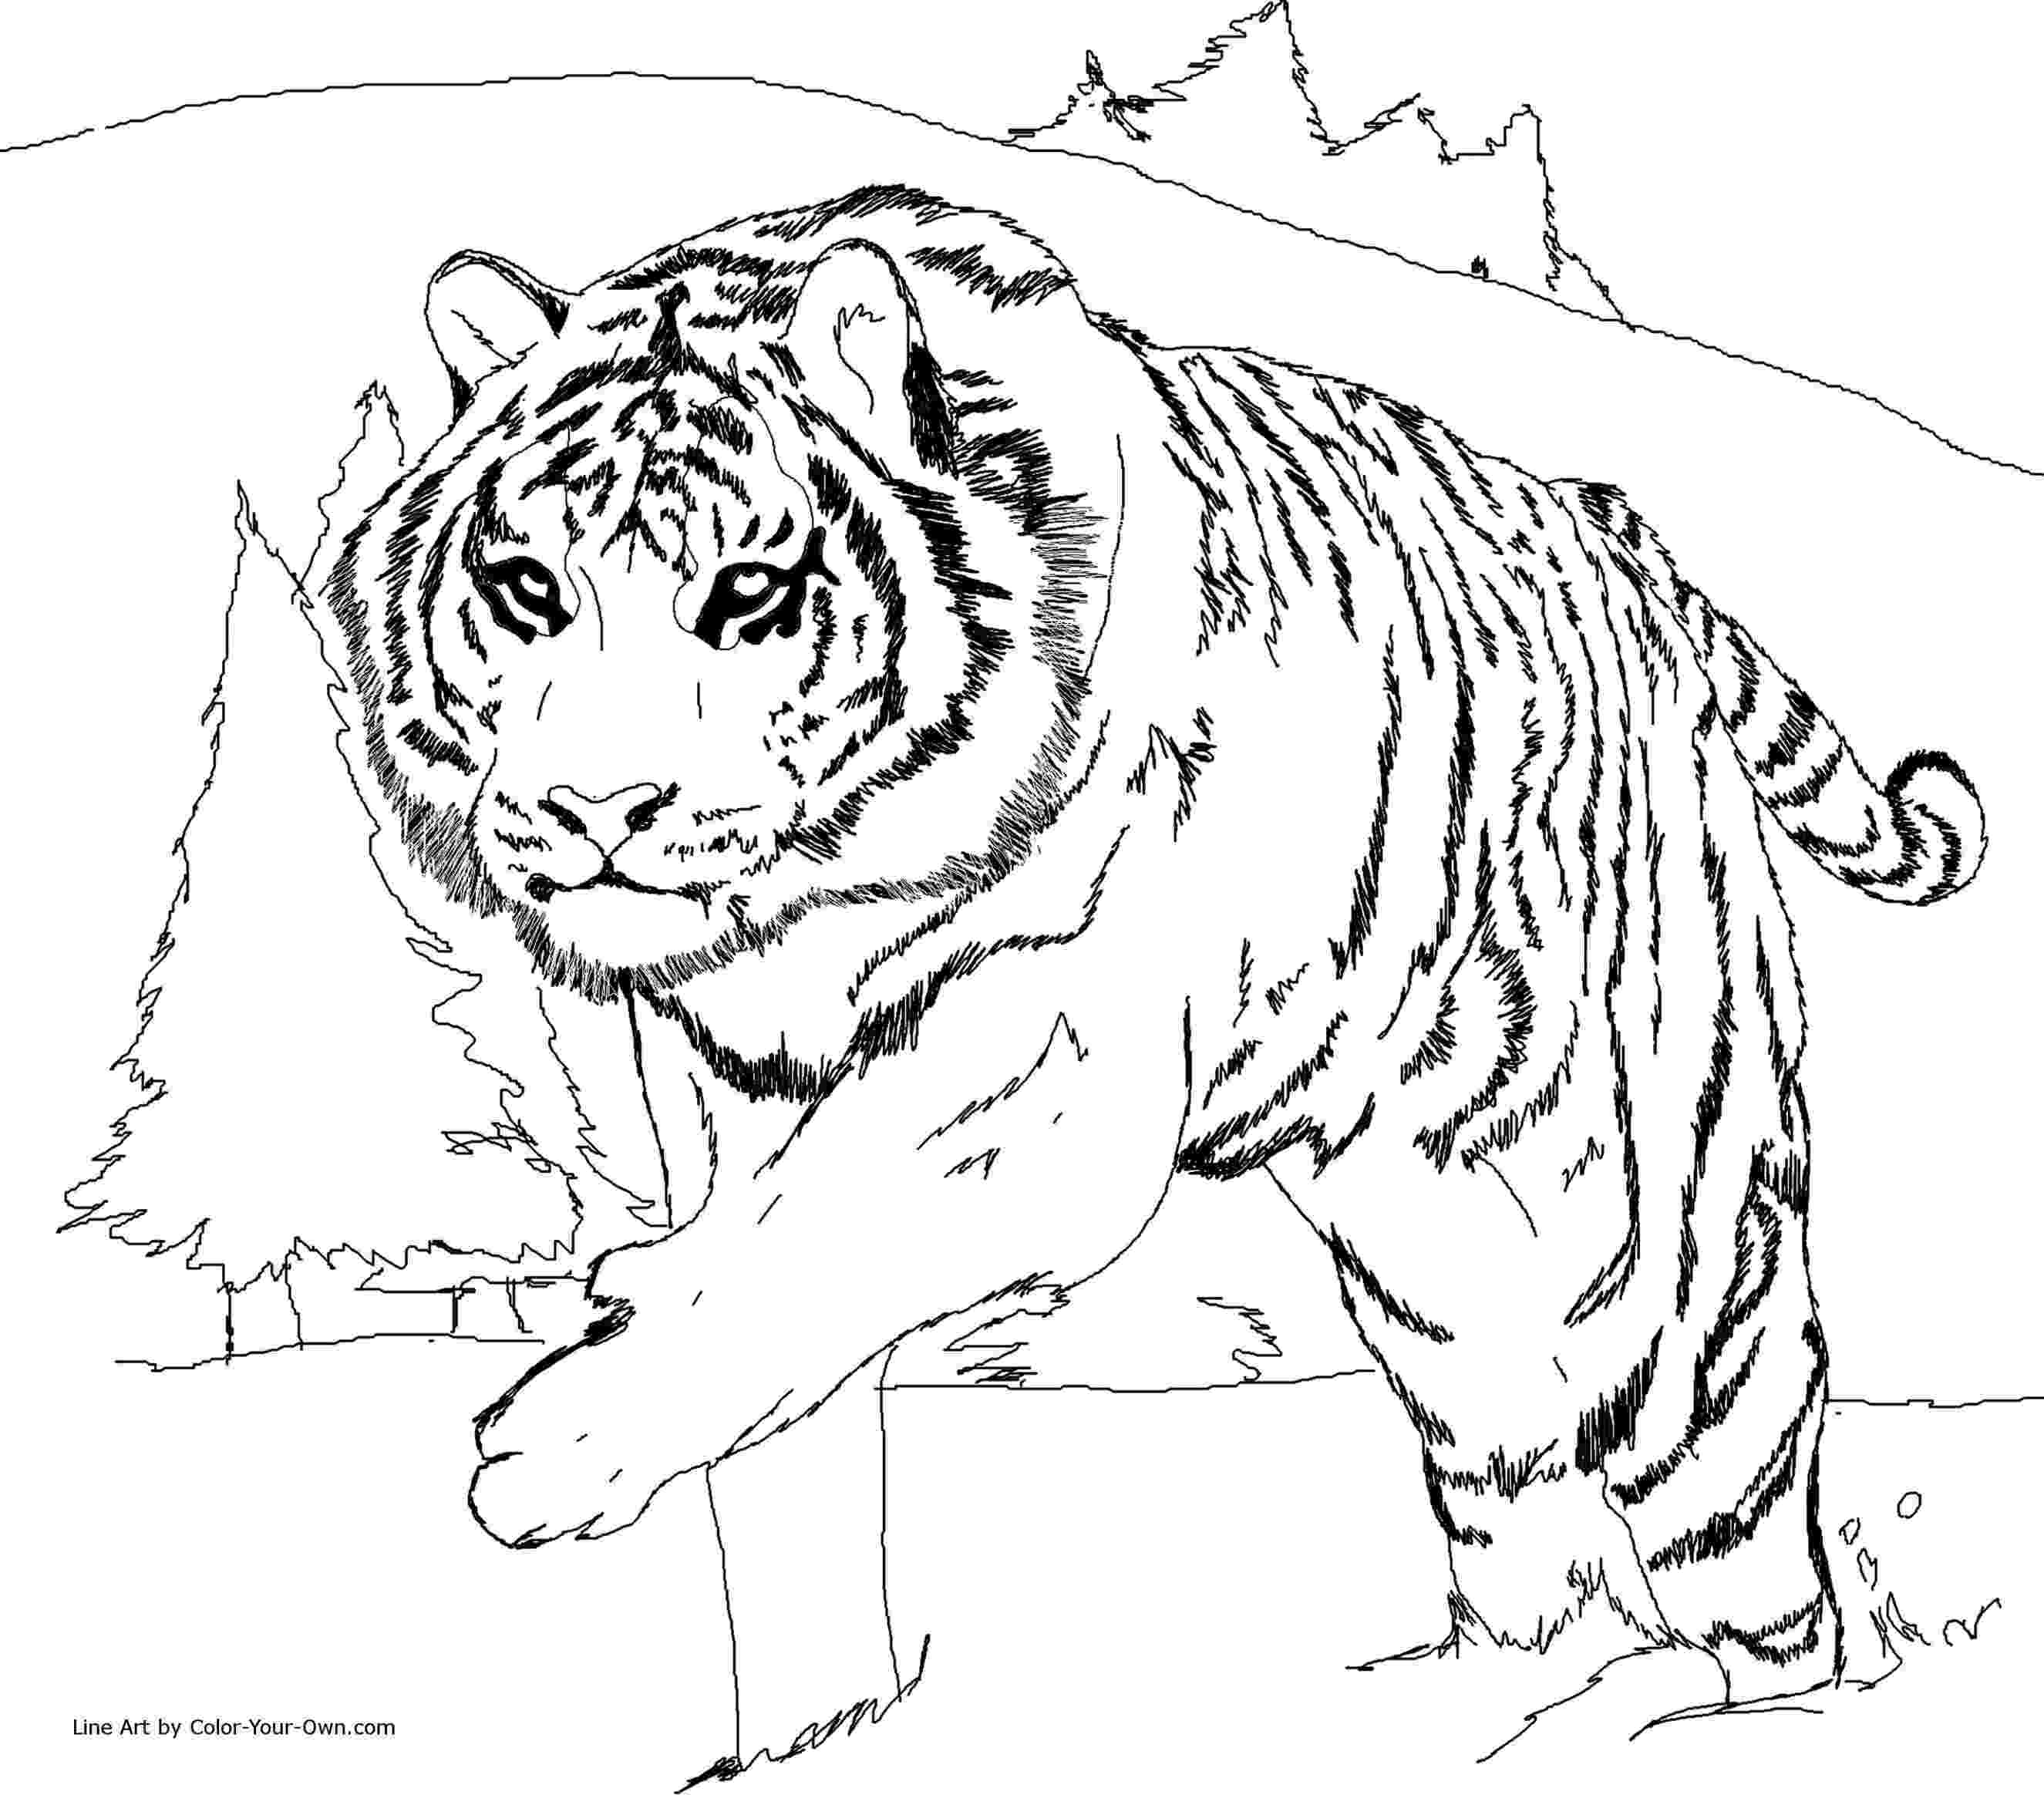 tiger without stripes coloring page tiger without stipes coloring page free tiger coloring without tiger stripes page coloring